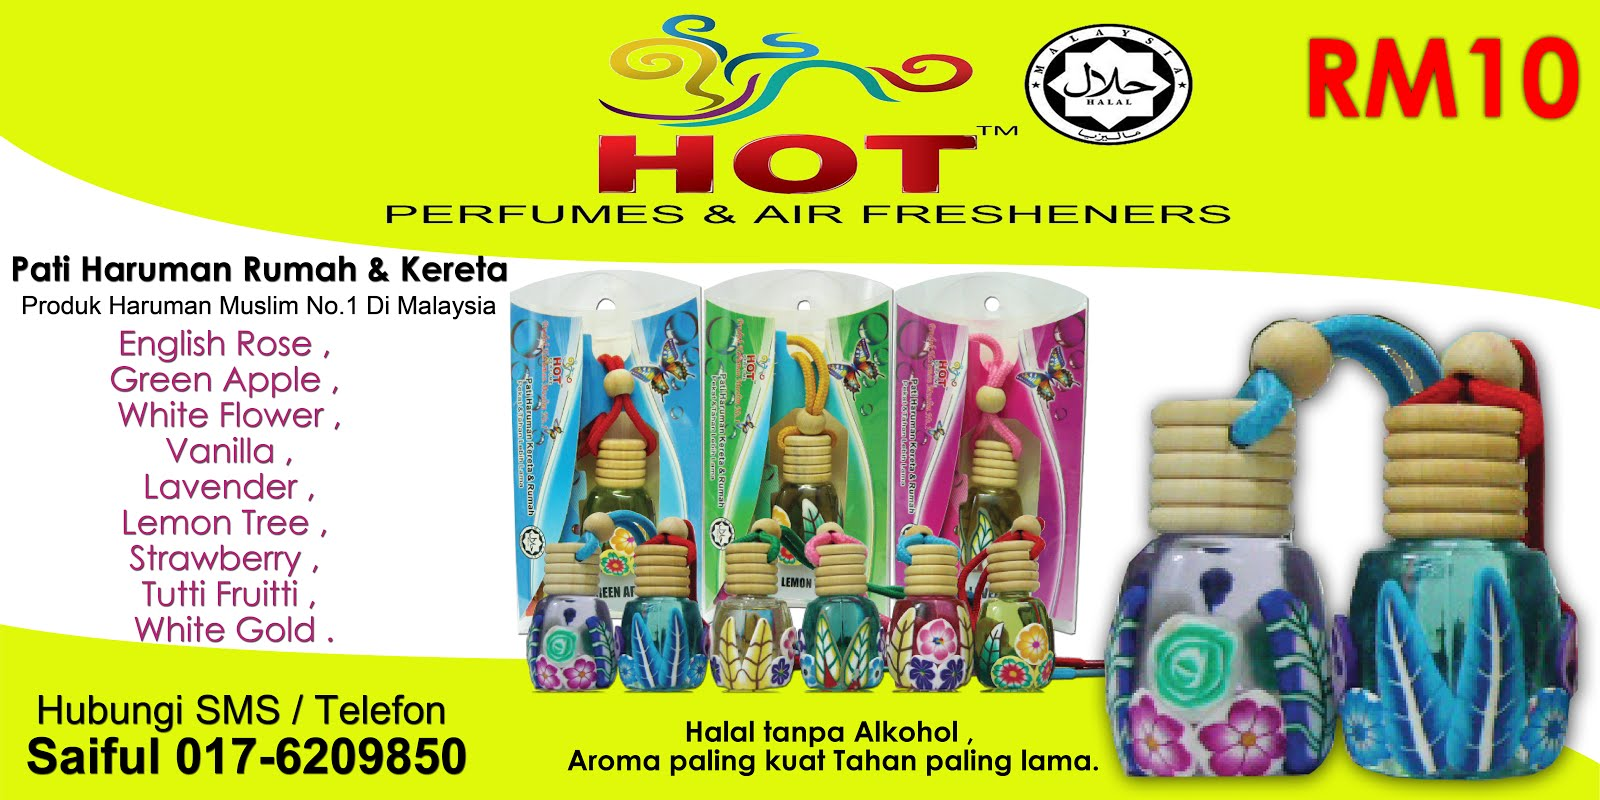 Pati Haruman Hot Perfumes and Air Fresheners